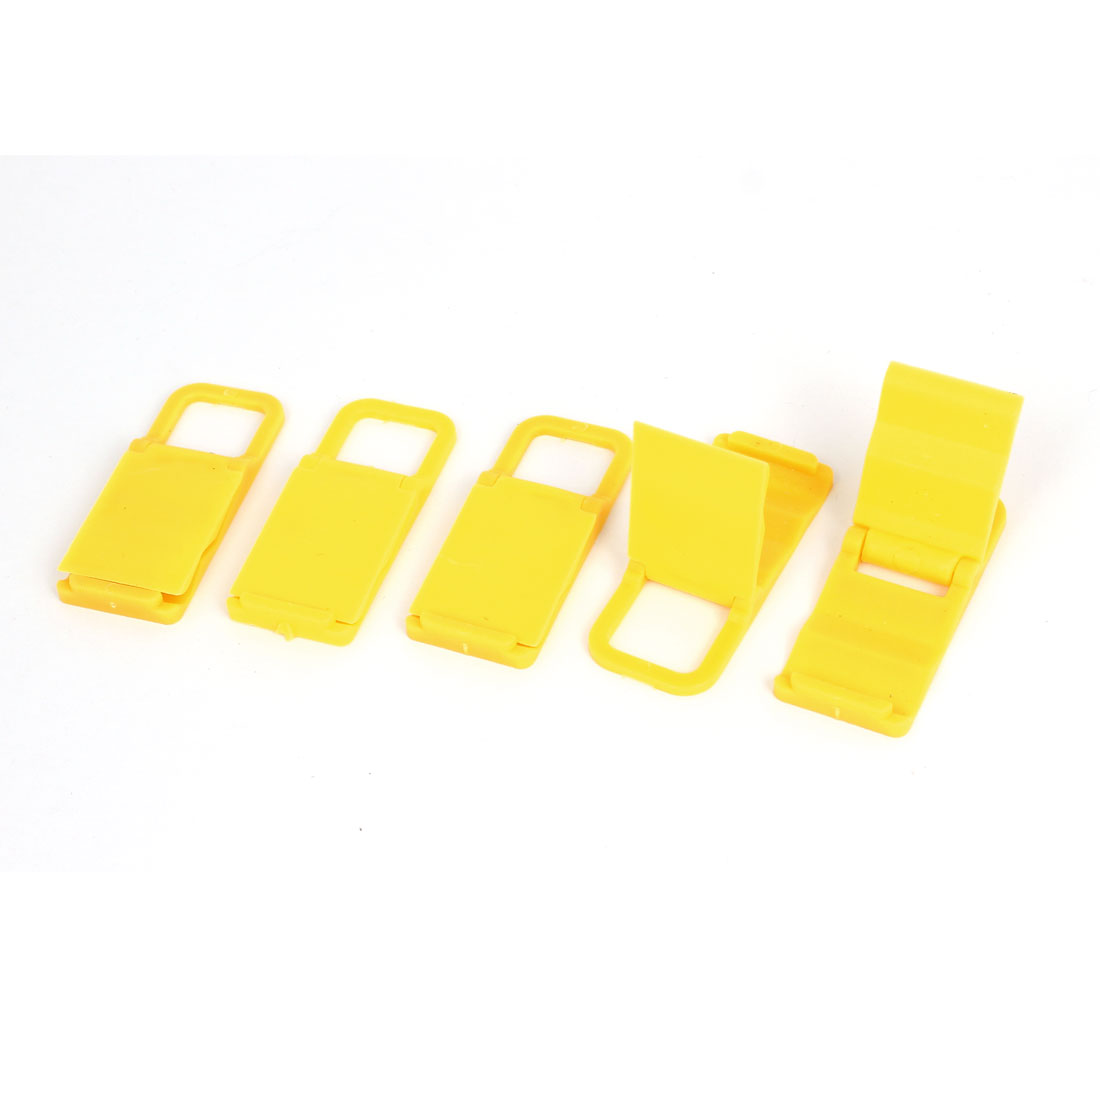 5pcs Desktop Foldable Chair Universal Mobile Phone Holder Stand Bracket Yellow